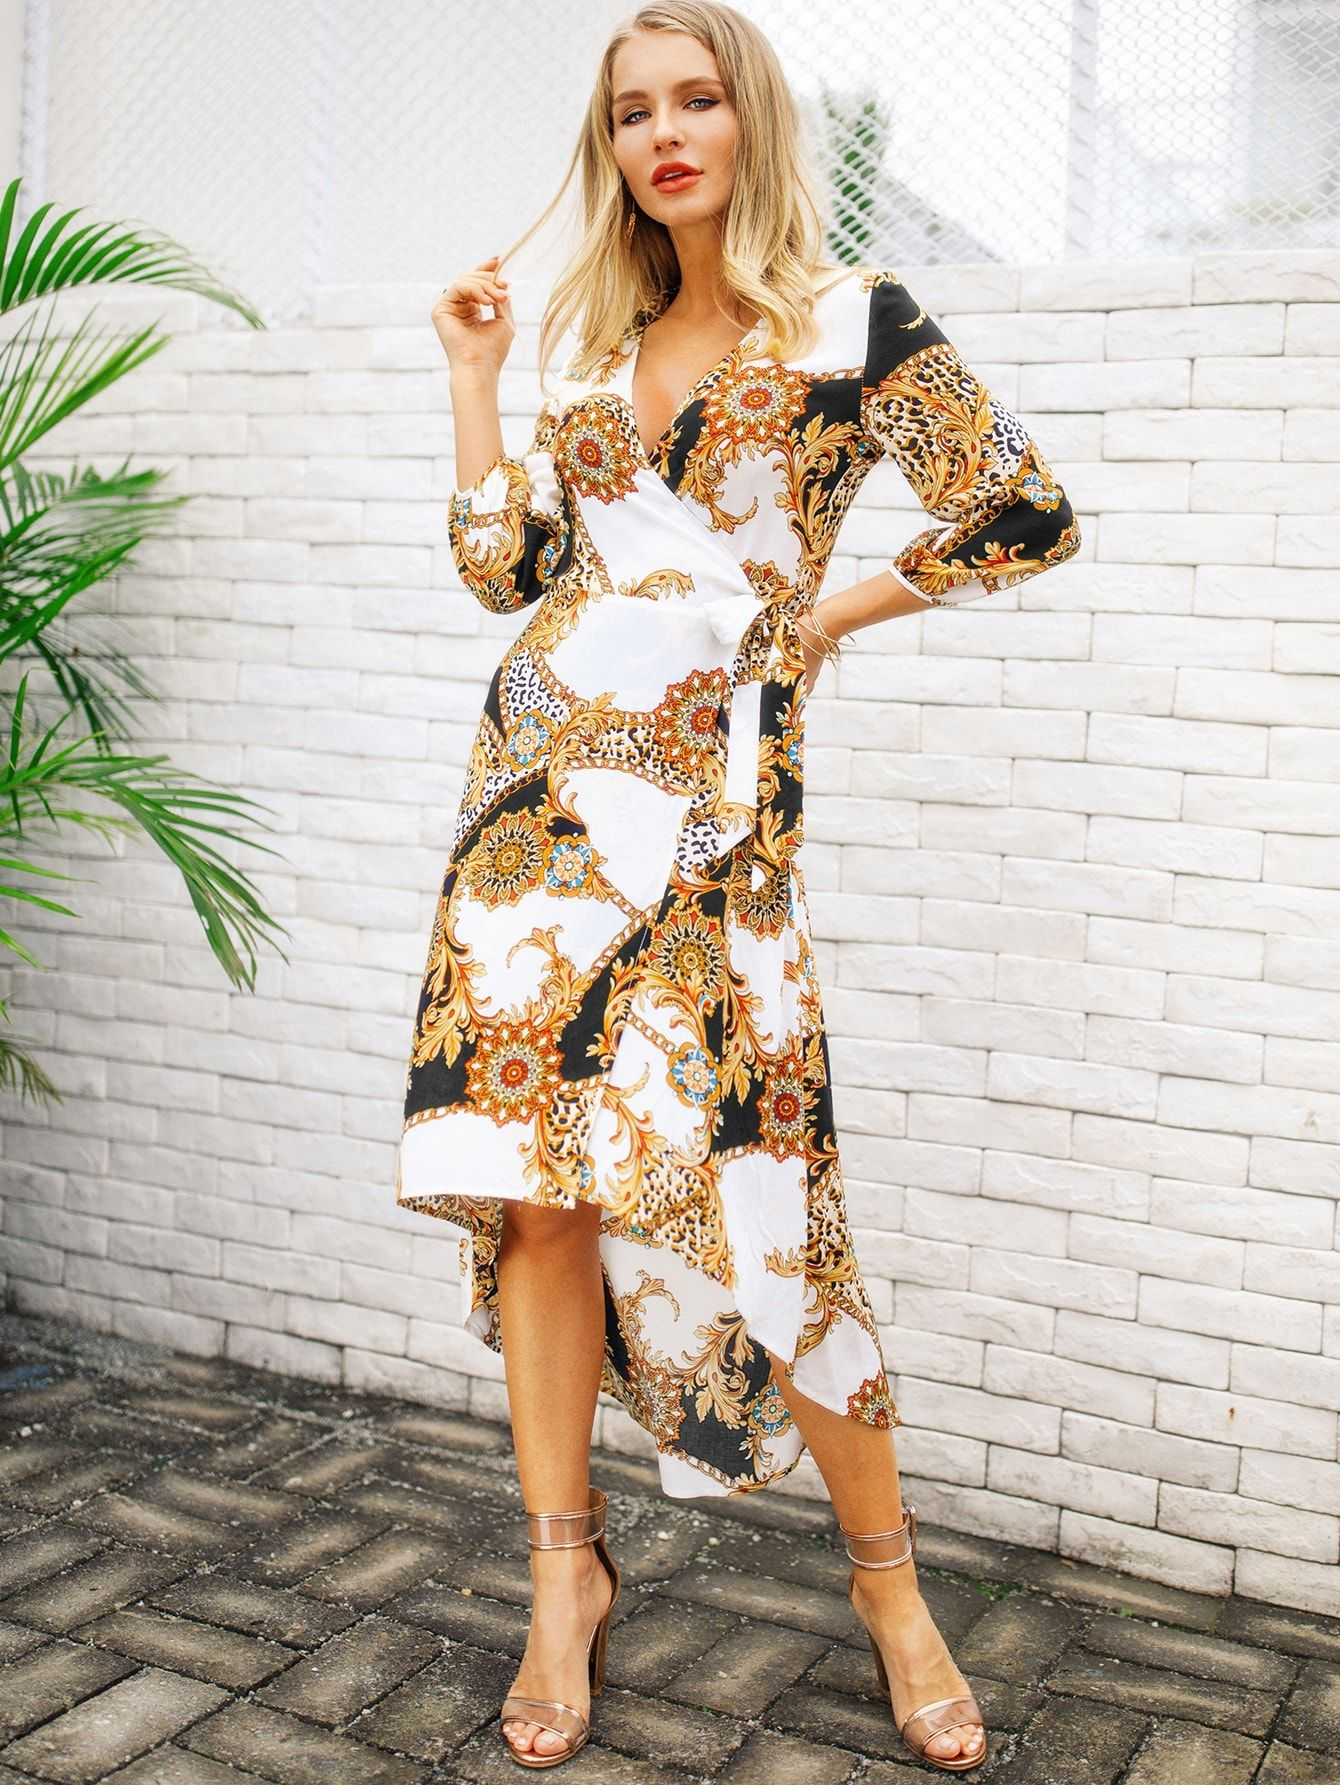 610d15ddf35 ... Geometric Fit and Flare Asymmetrical V Neck Three Quarter Length Sleeve  Natural White Long Length Contrast Leopard & Scarf Printed Knot Side Wrap  Dress